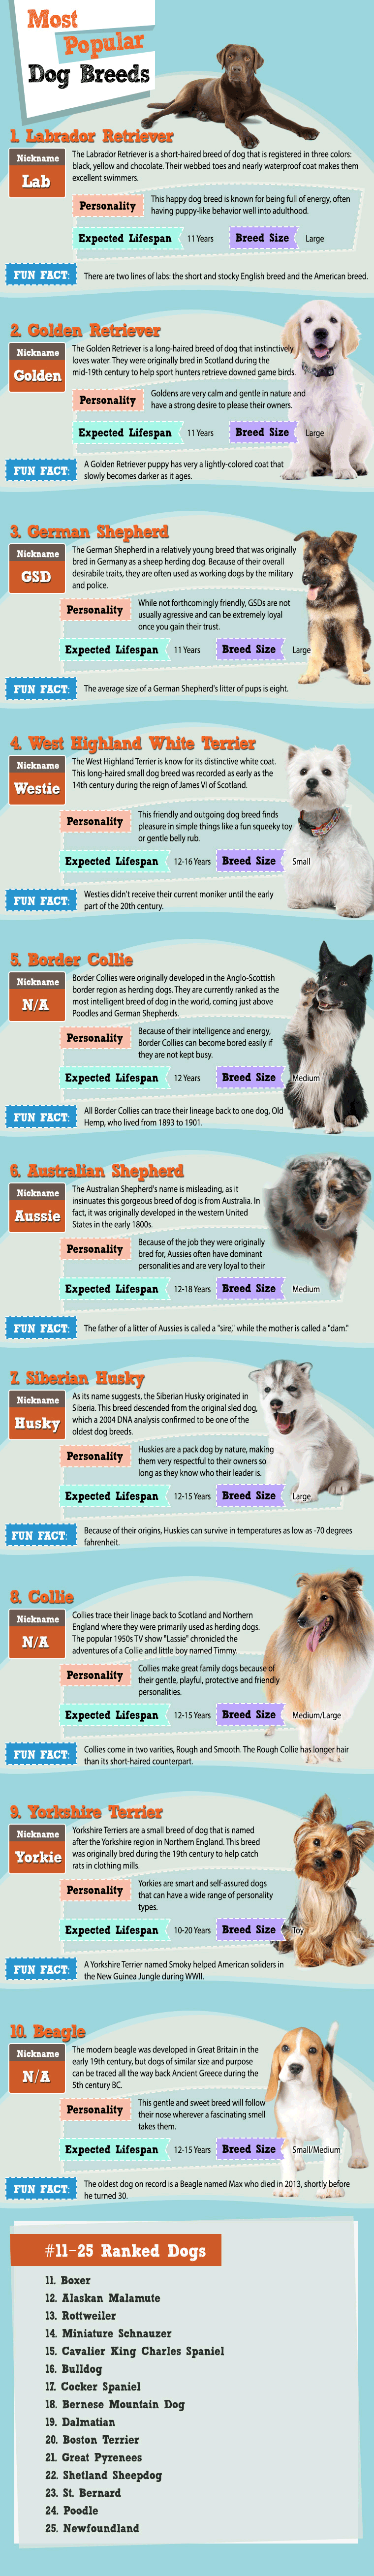 The top 10 most popular dog breeds of 2015 based on more than 17,500 votes